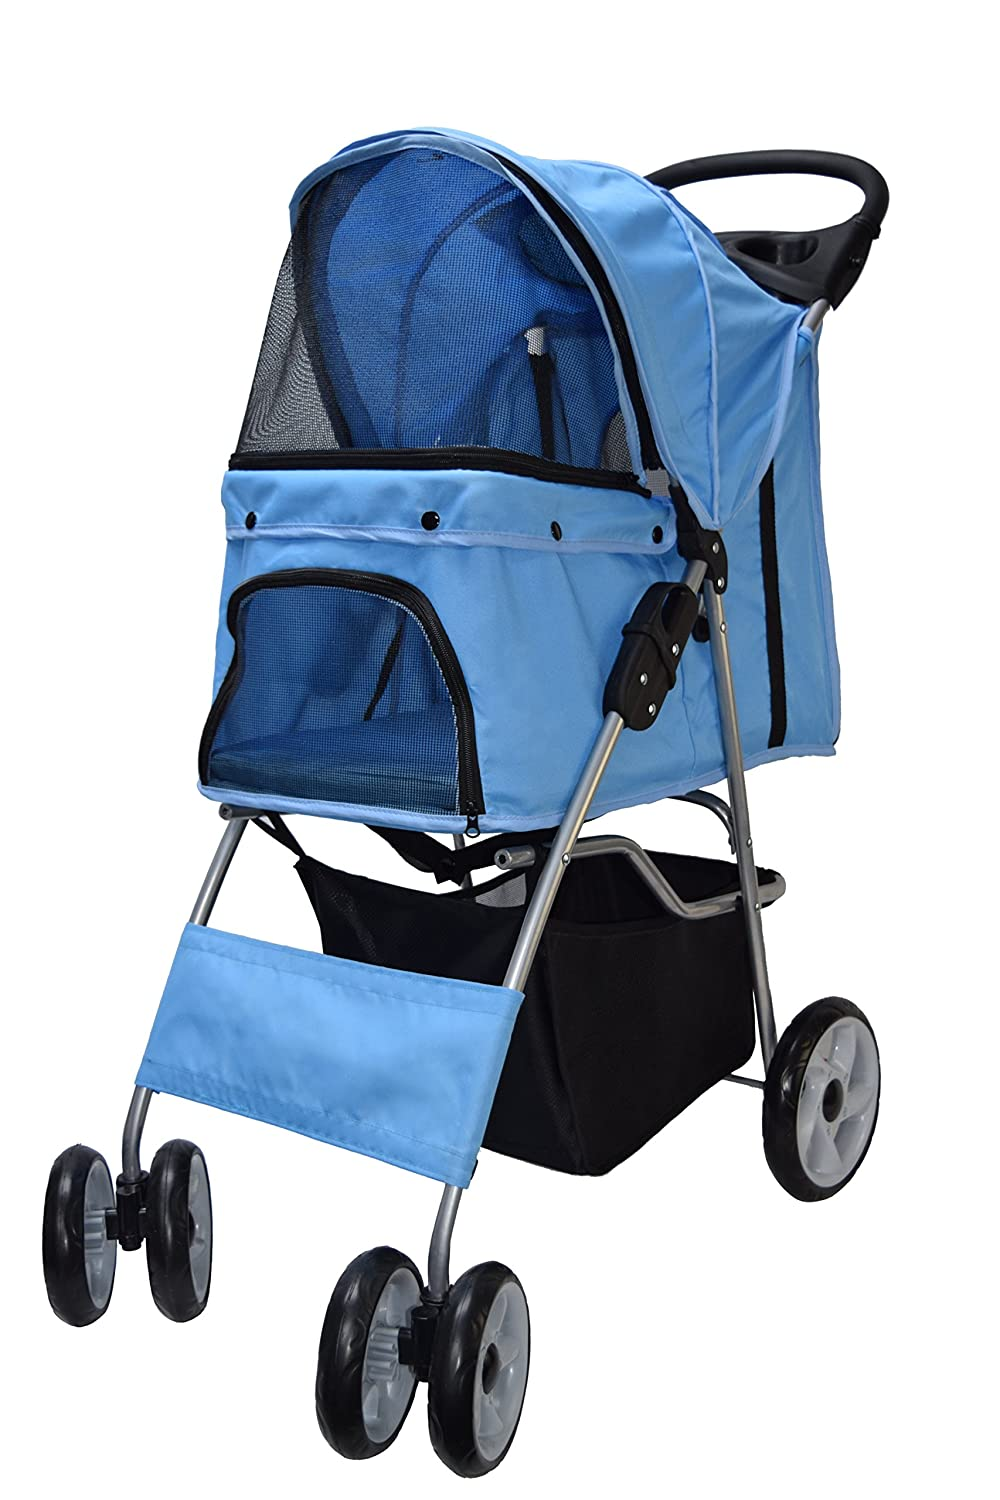 Image result for cat stroller